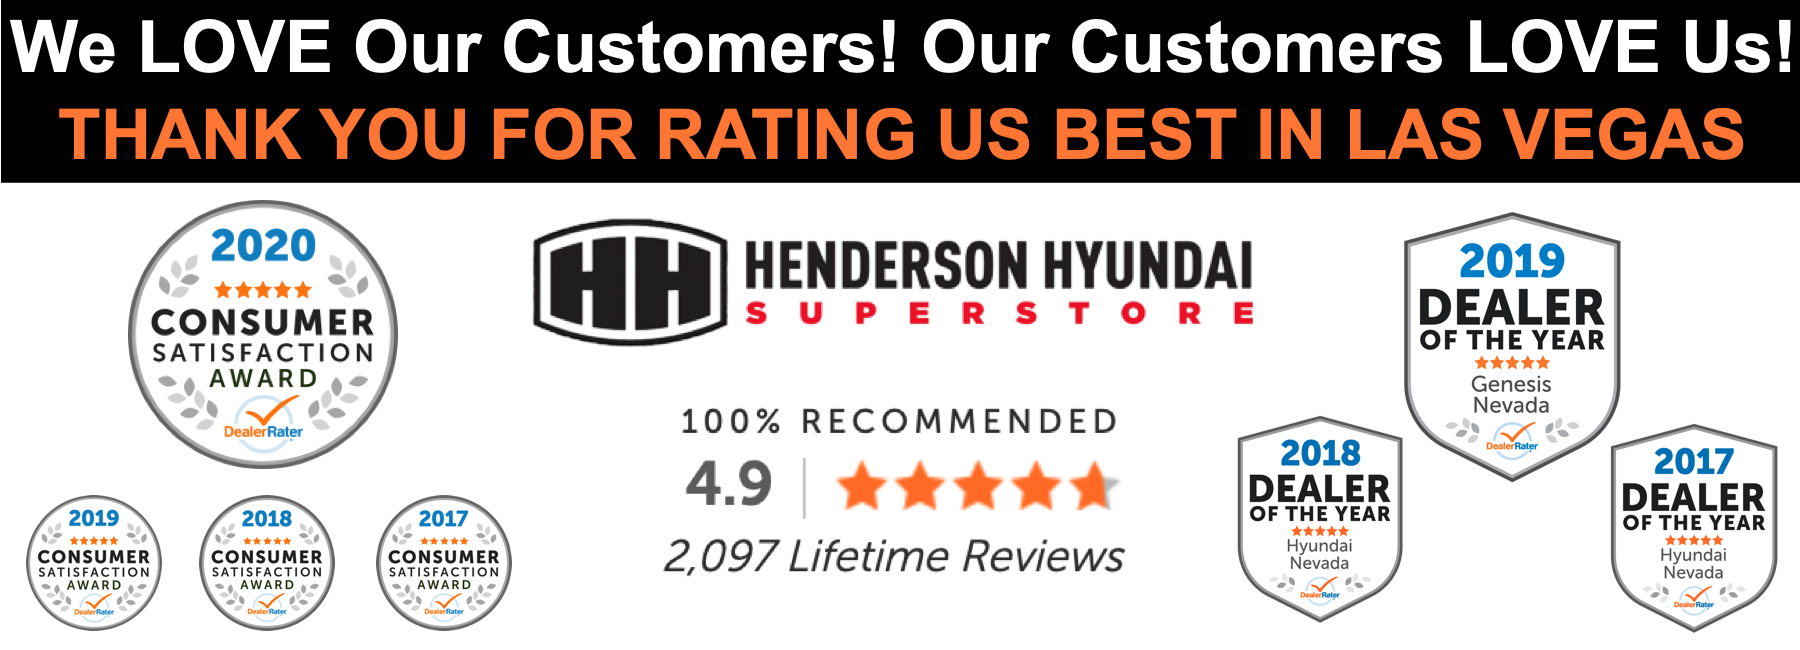 Henderson Hyundai_Reviews Webslider_v2